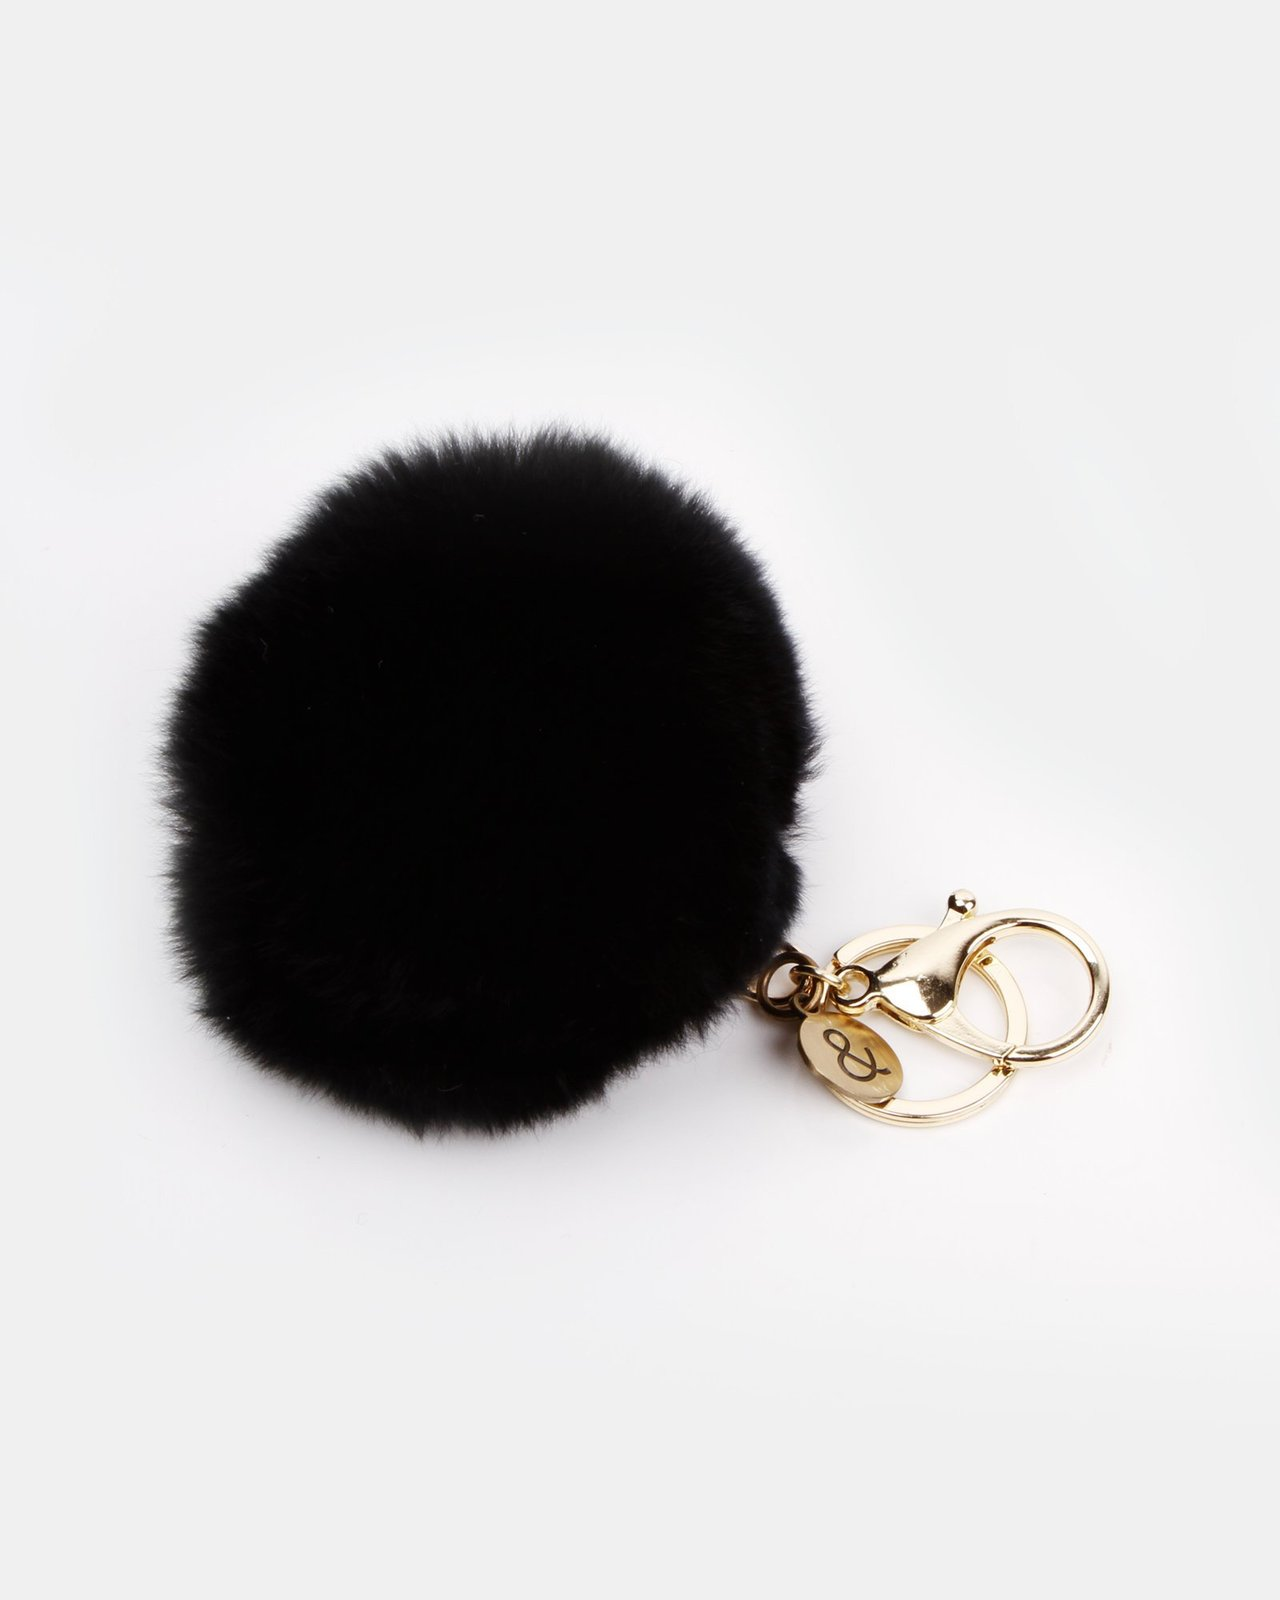 Belle and Bloom: Faux Fur Pom Pom Keychain - Black image